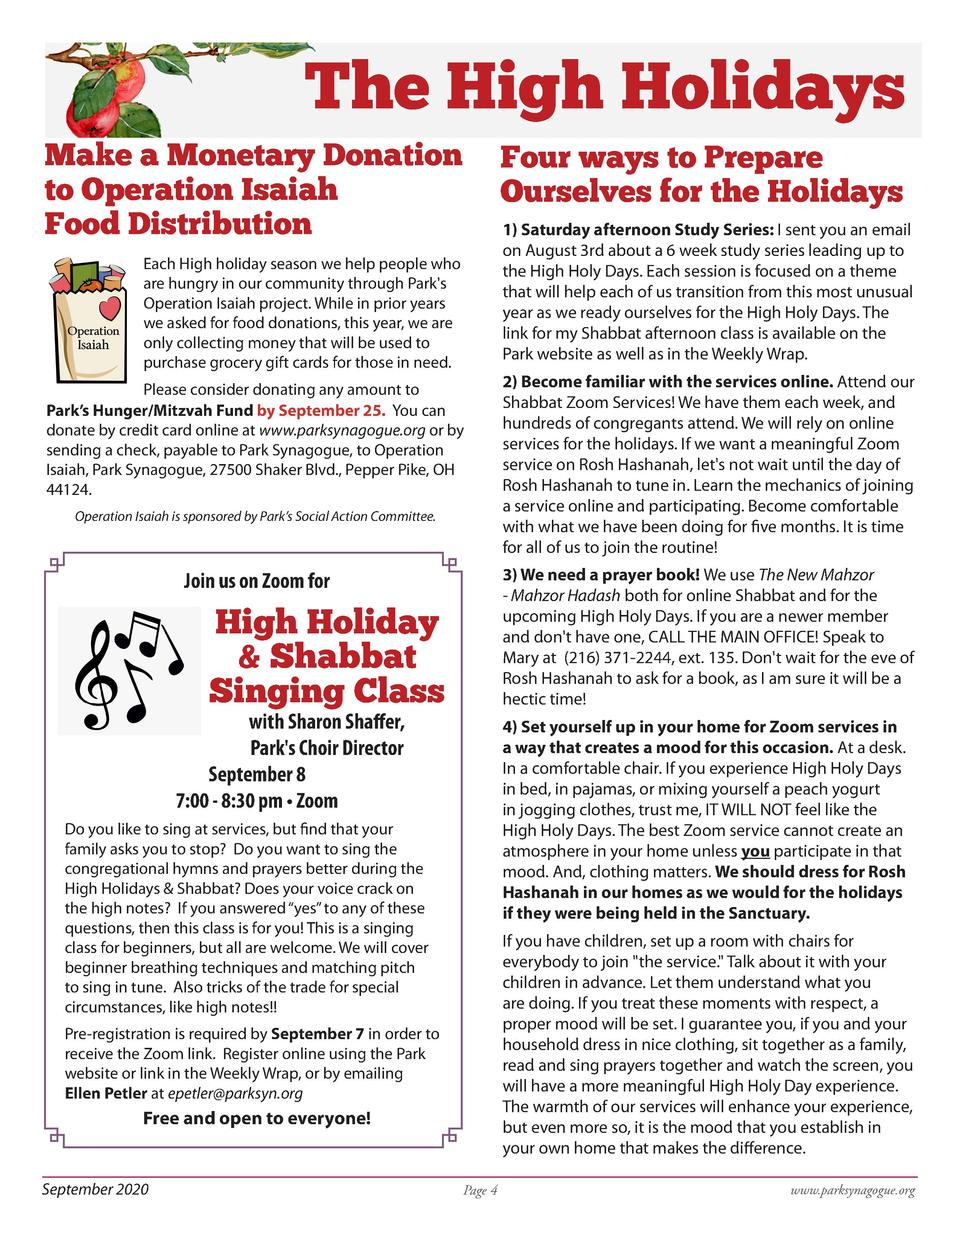 The High Holidays Make a Monetary Donation to Operation Isaiah Food Distribution  Four ways to Prepare Ourselves for the H...